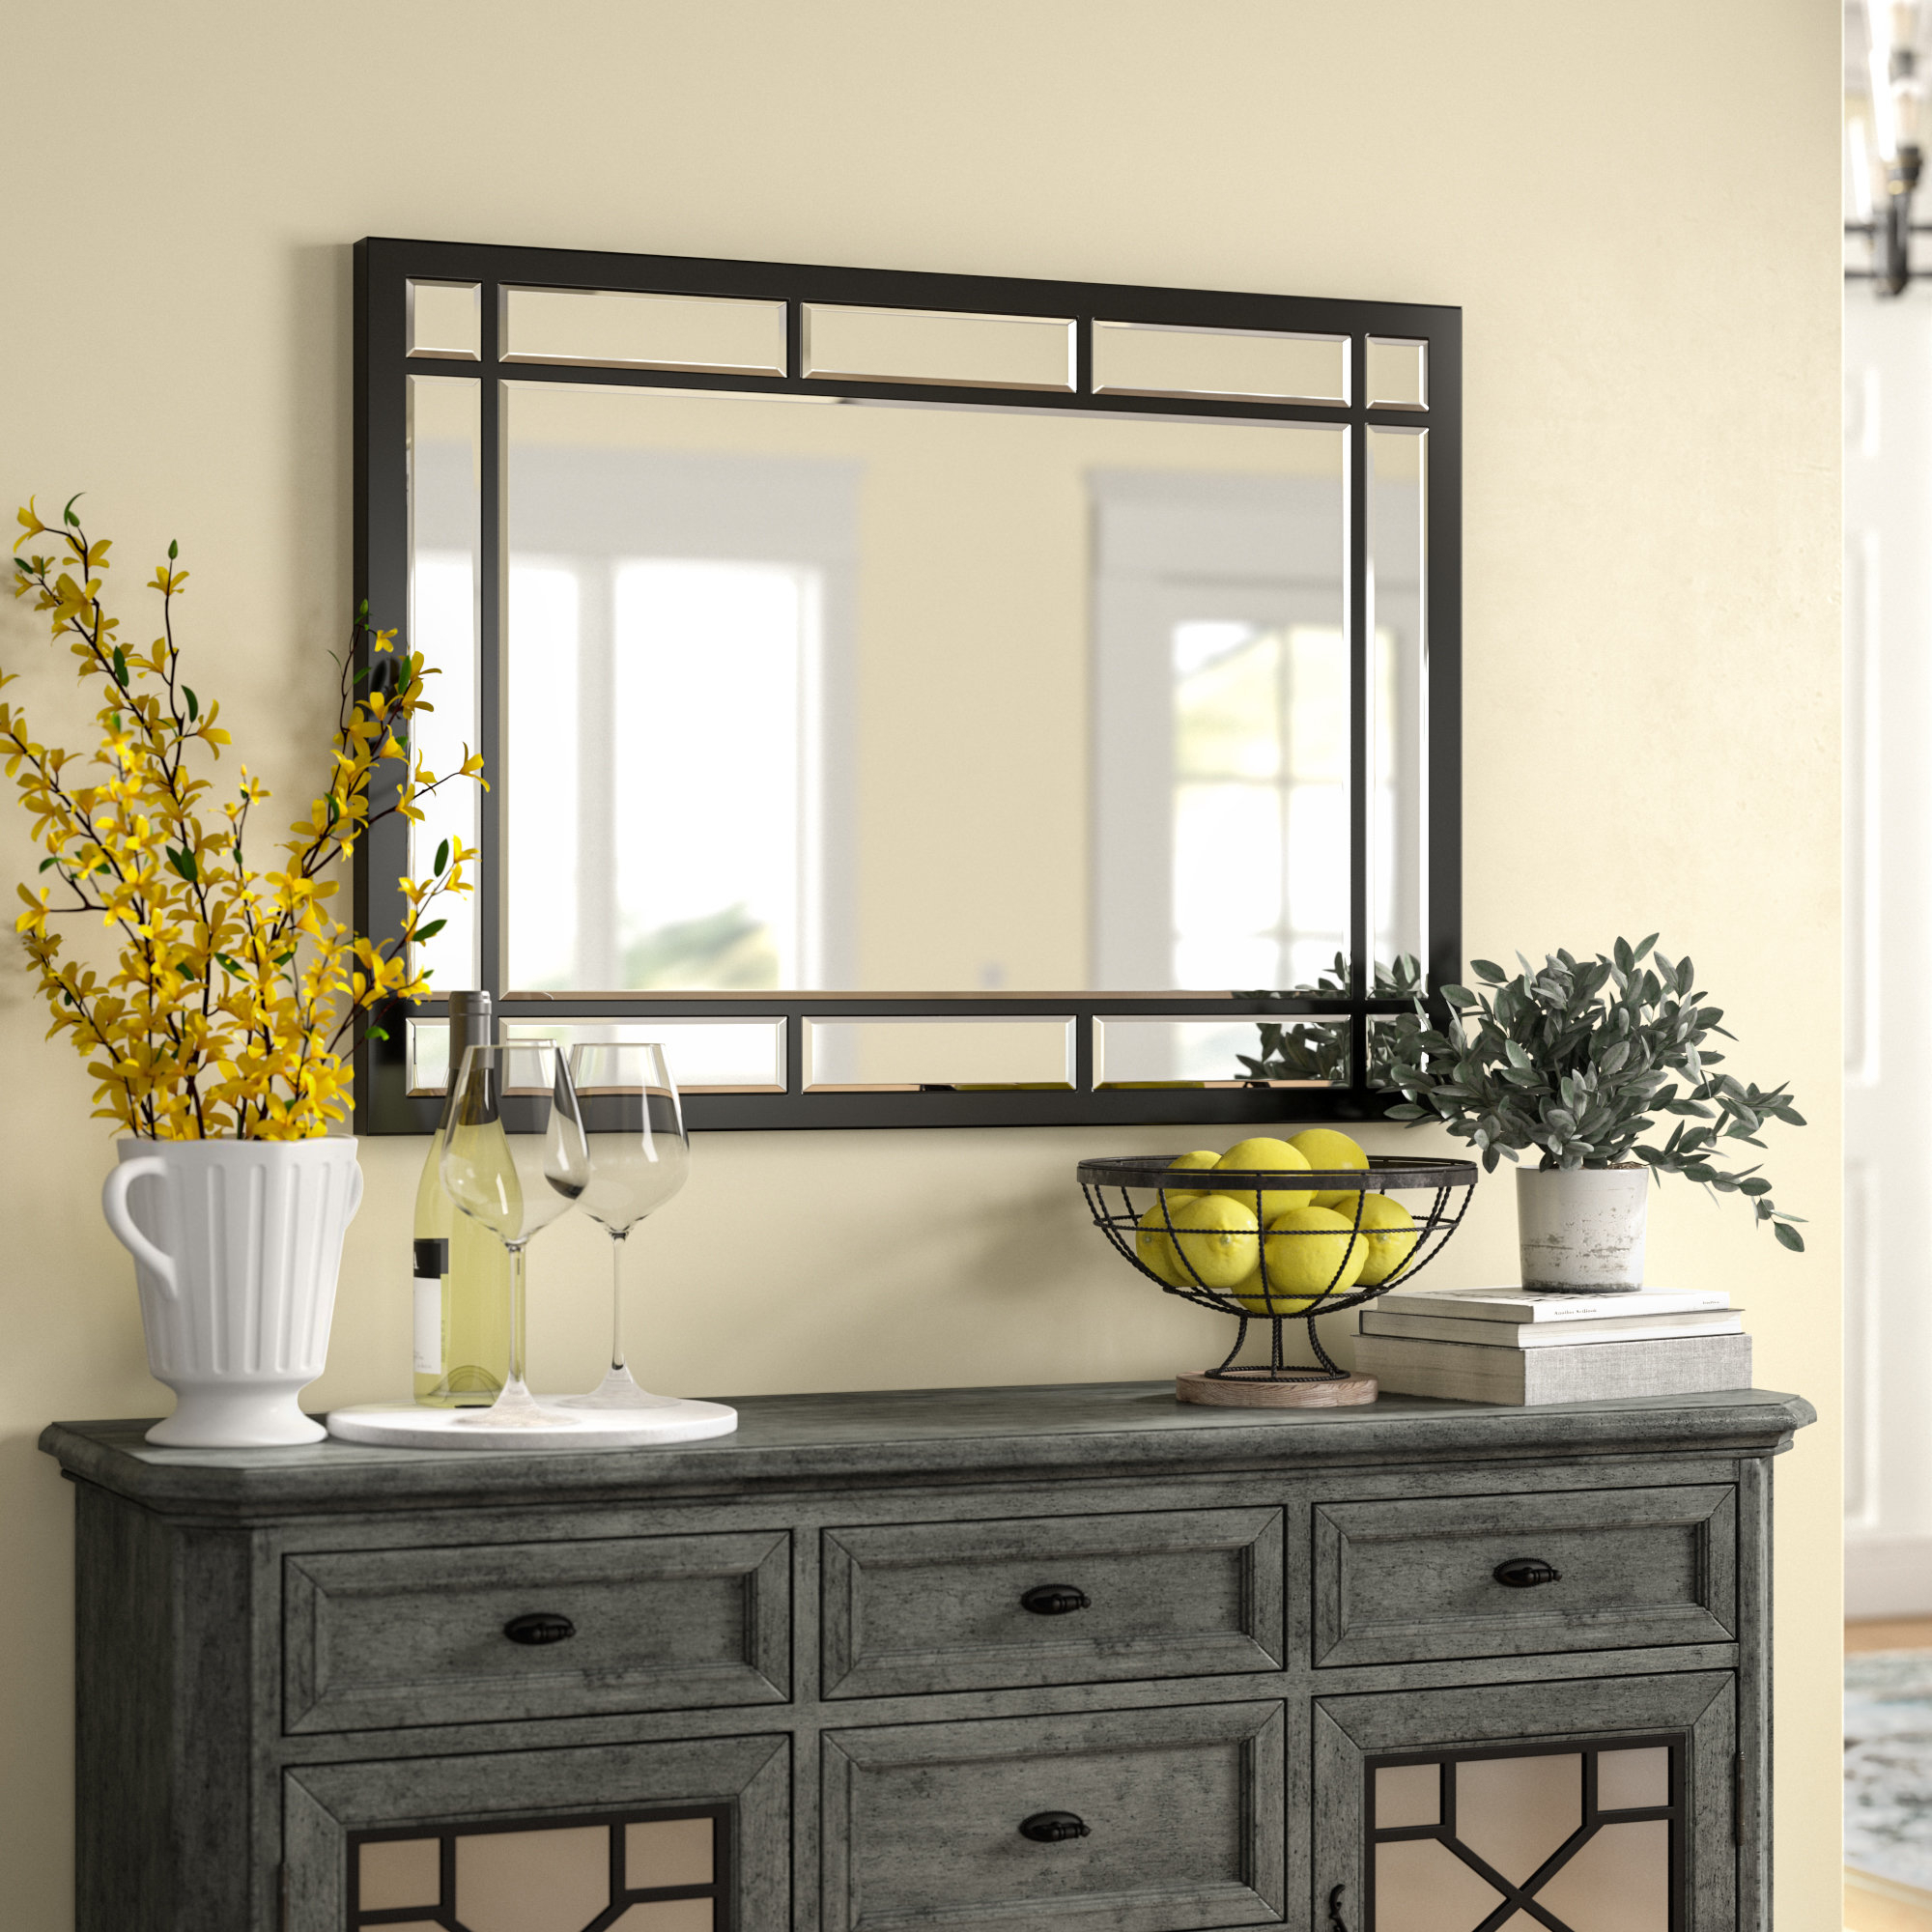 Whalen Traditional/modern And Contemporary Accent Mirror Throughout Hub Modern And Contemporary Accent Mirrors (View 30 of 30)